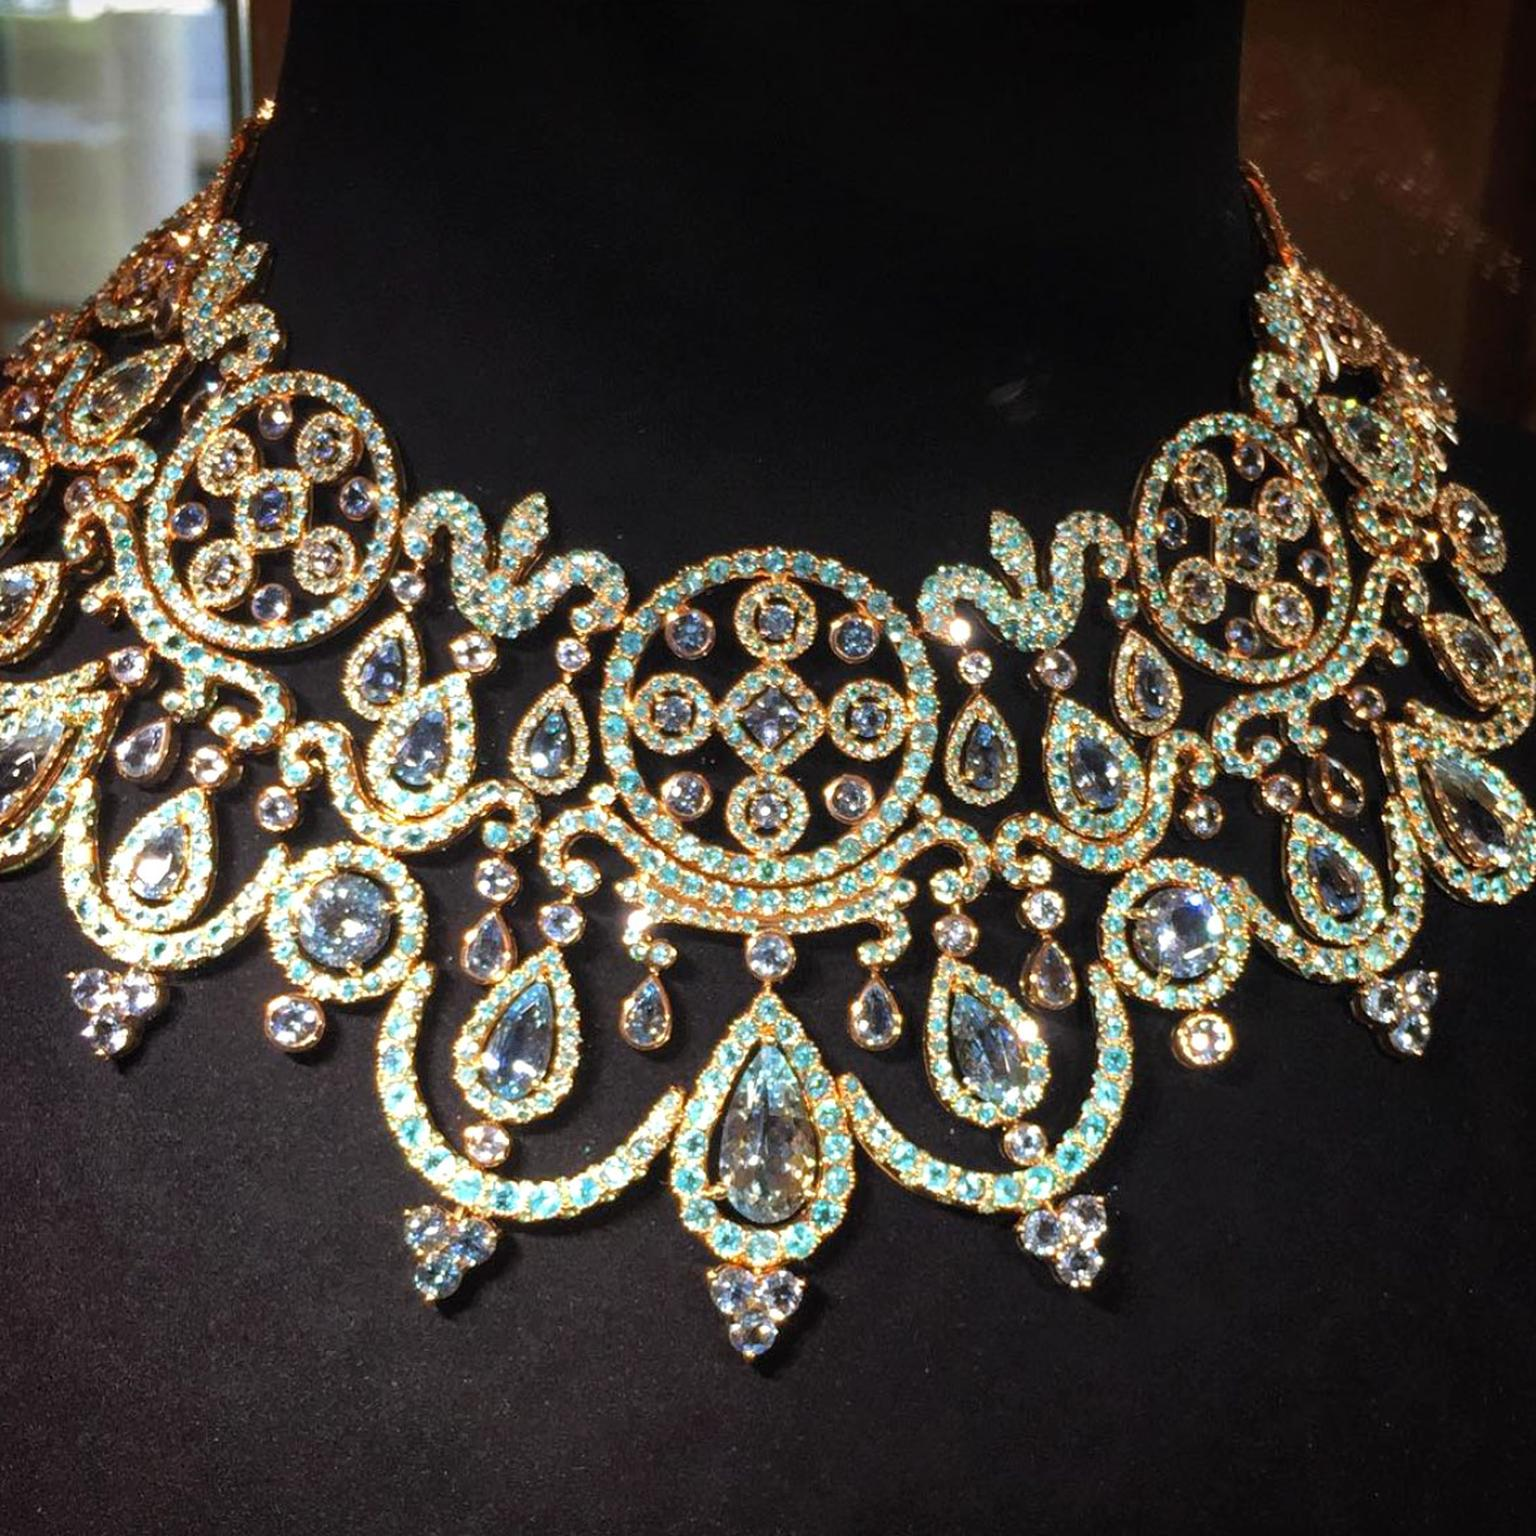 Giampiero Bodino necklace TJE Instagram